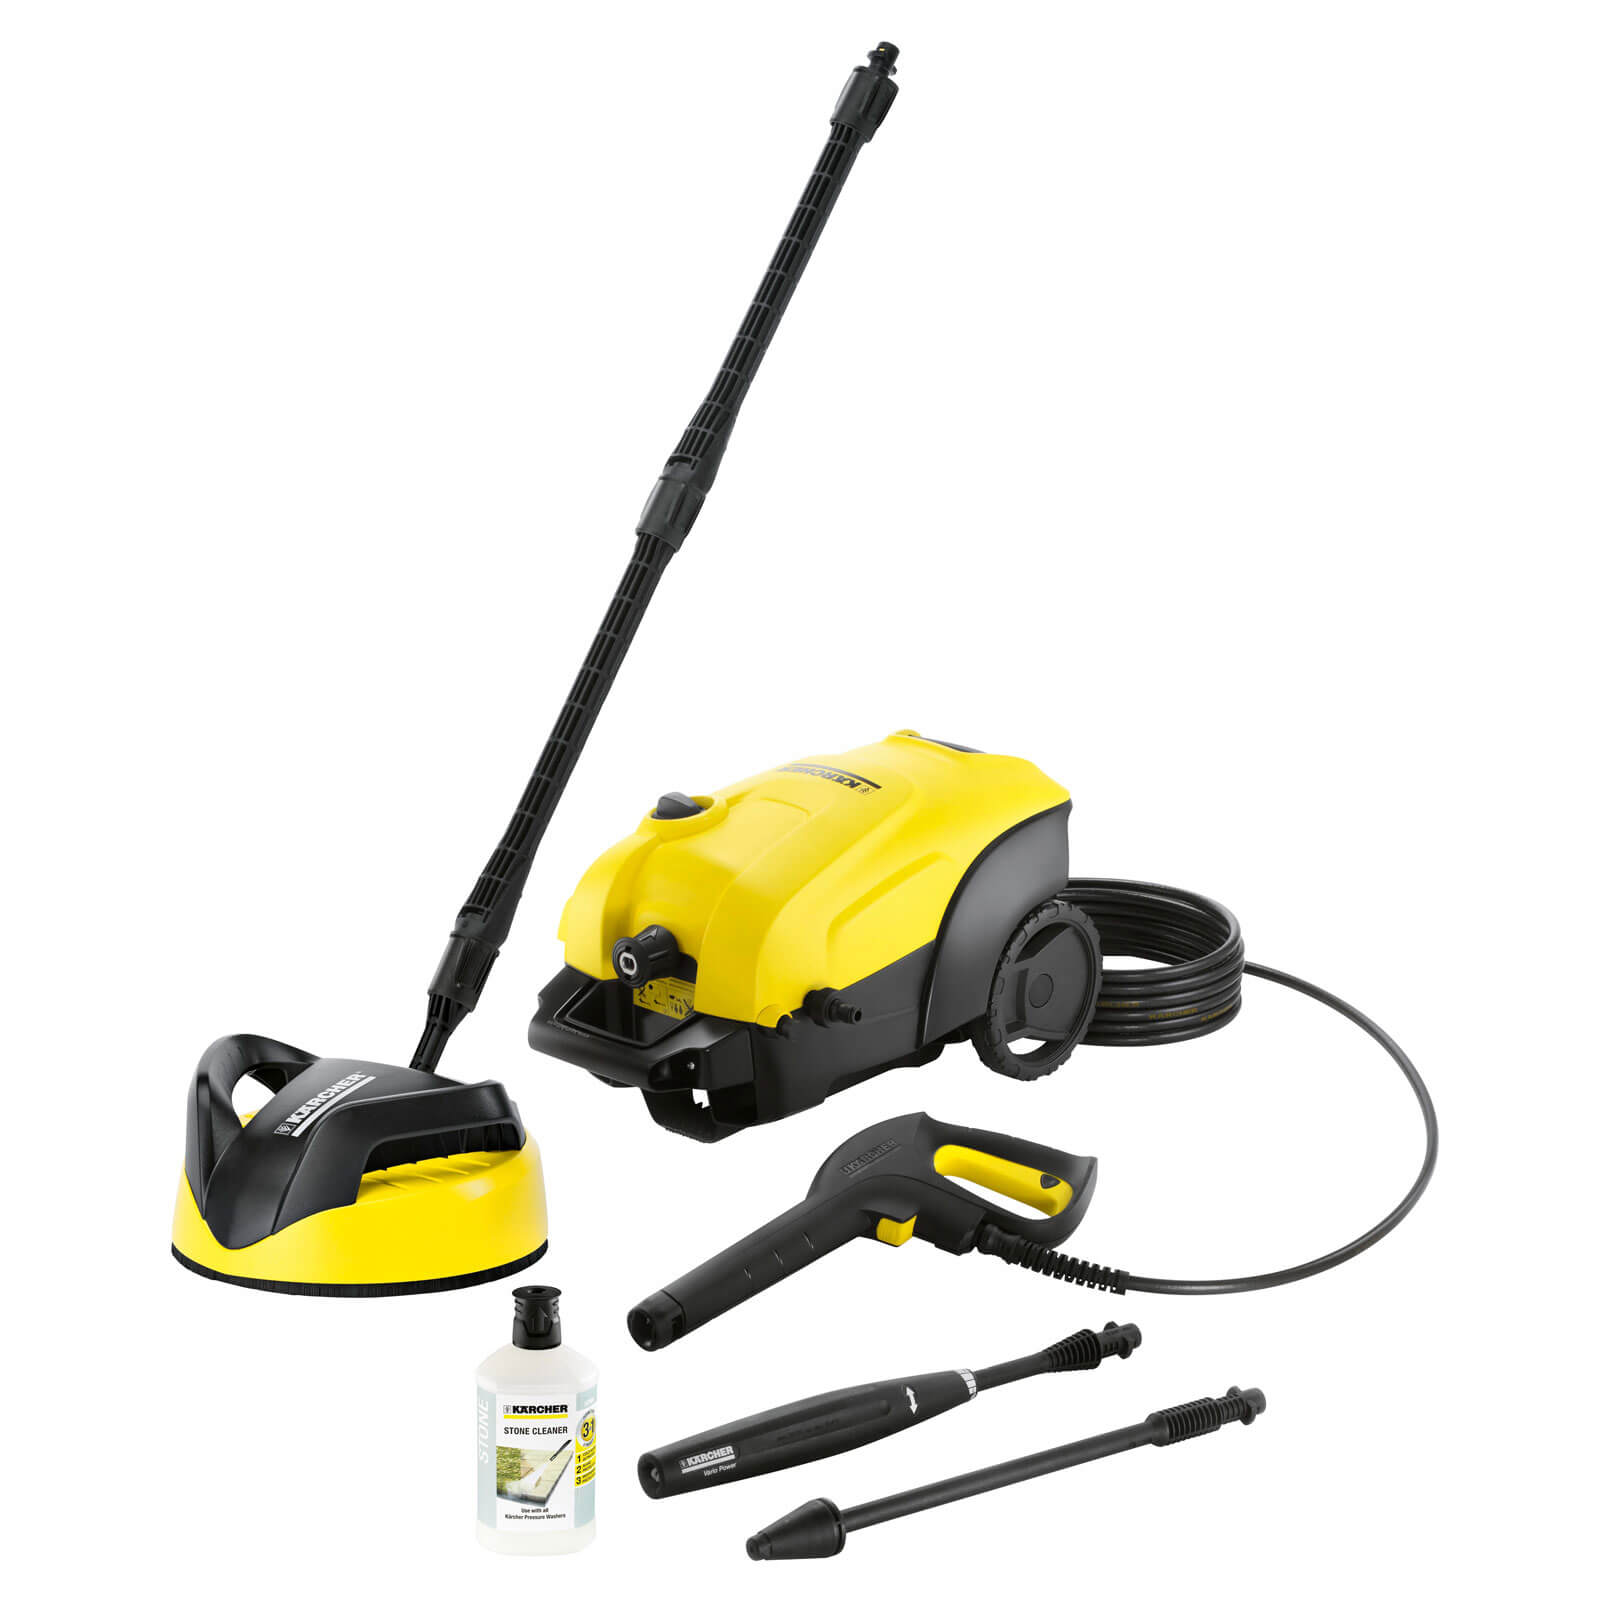 Karcher K4 Compact Home Pressure Washer 130 Bar 240v